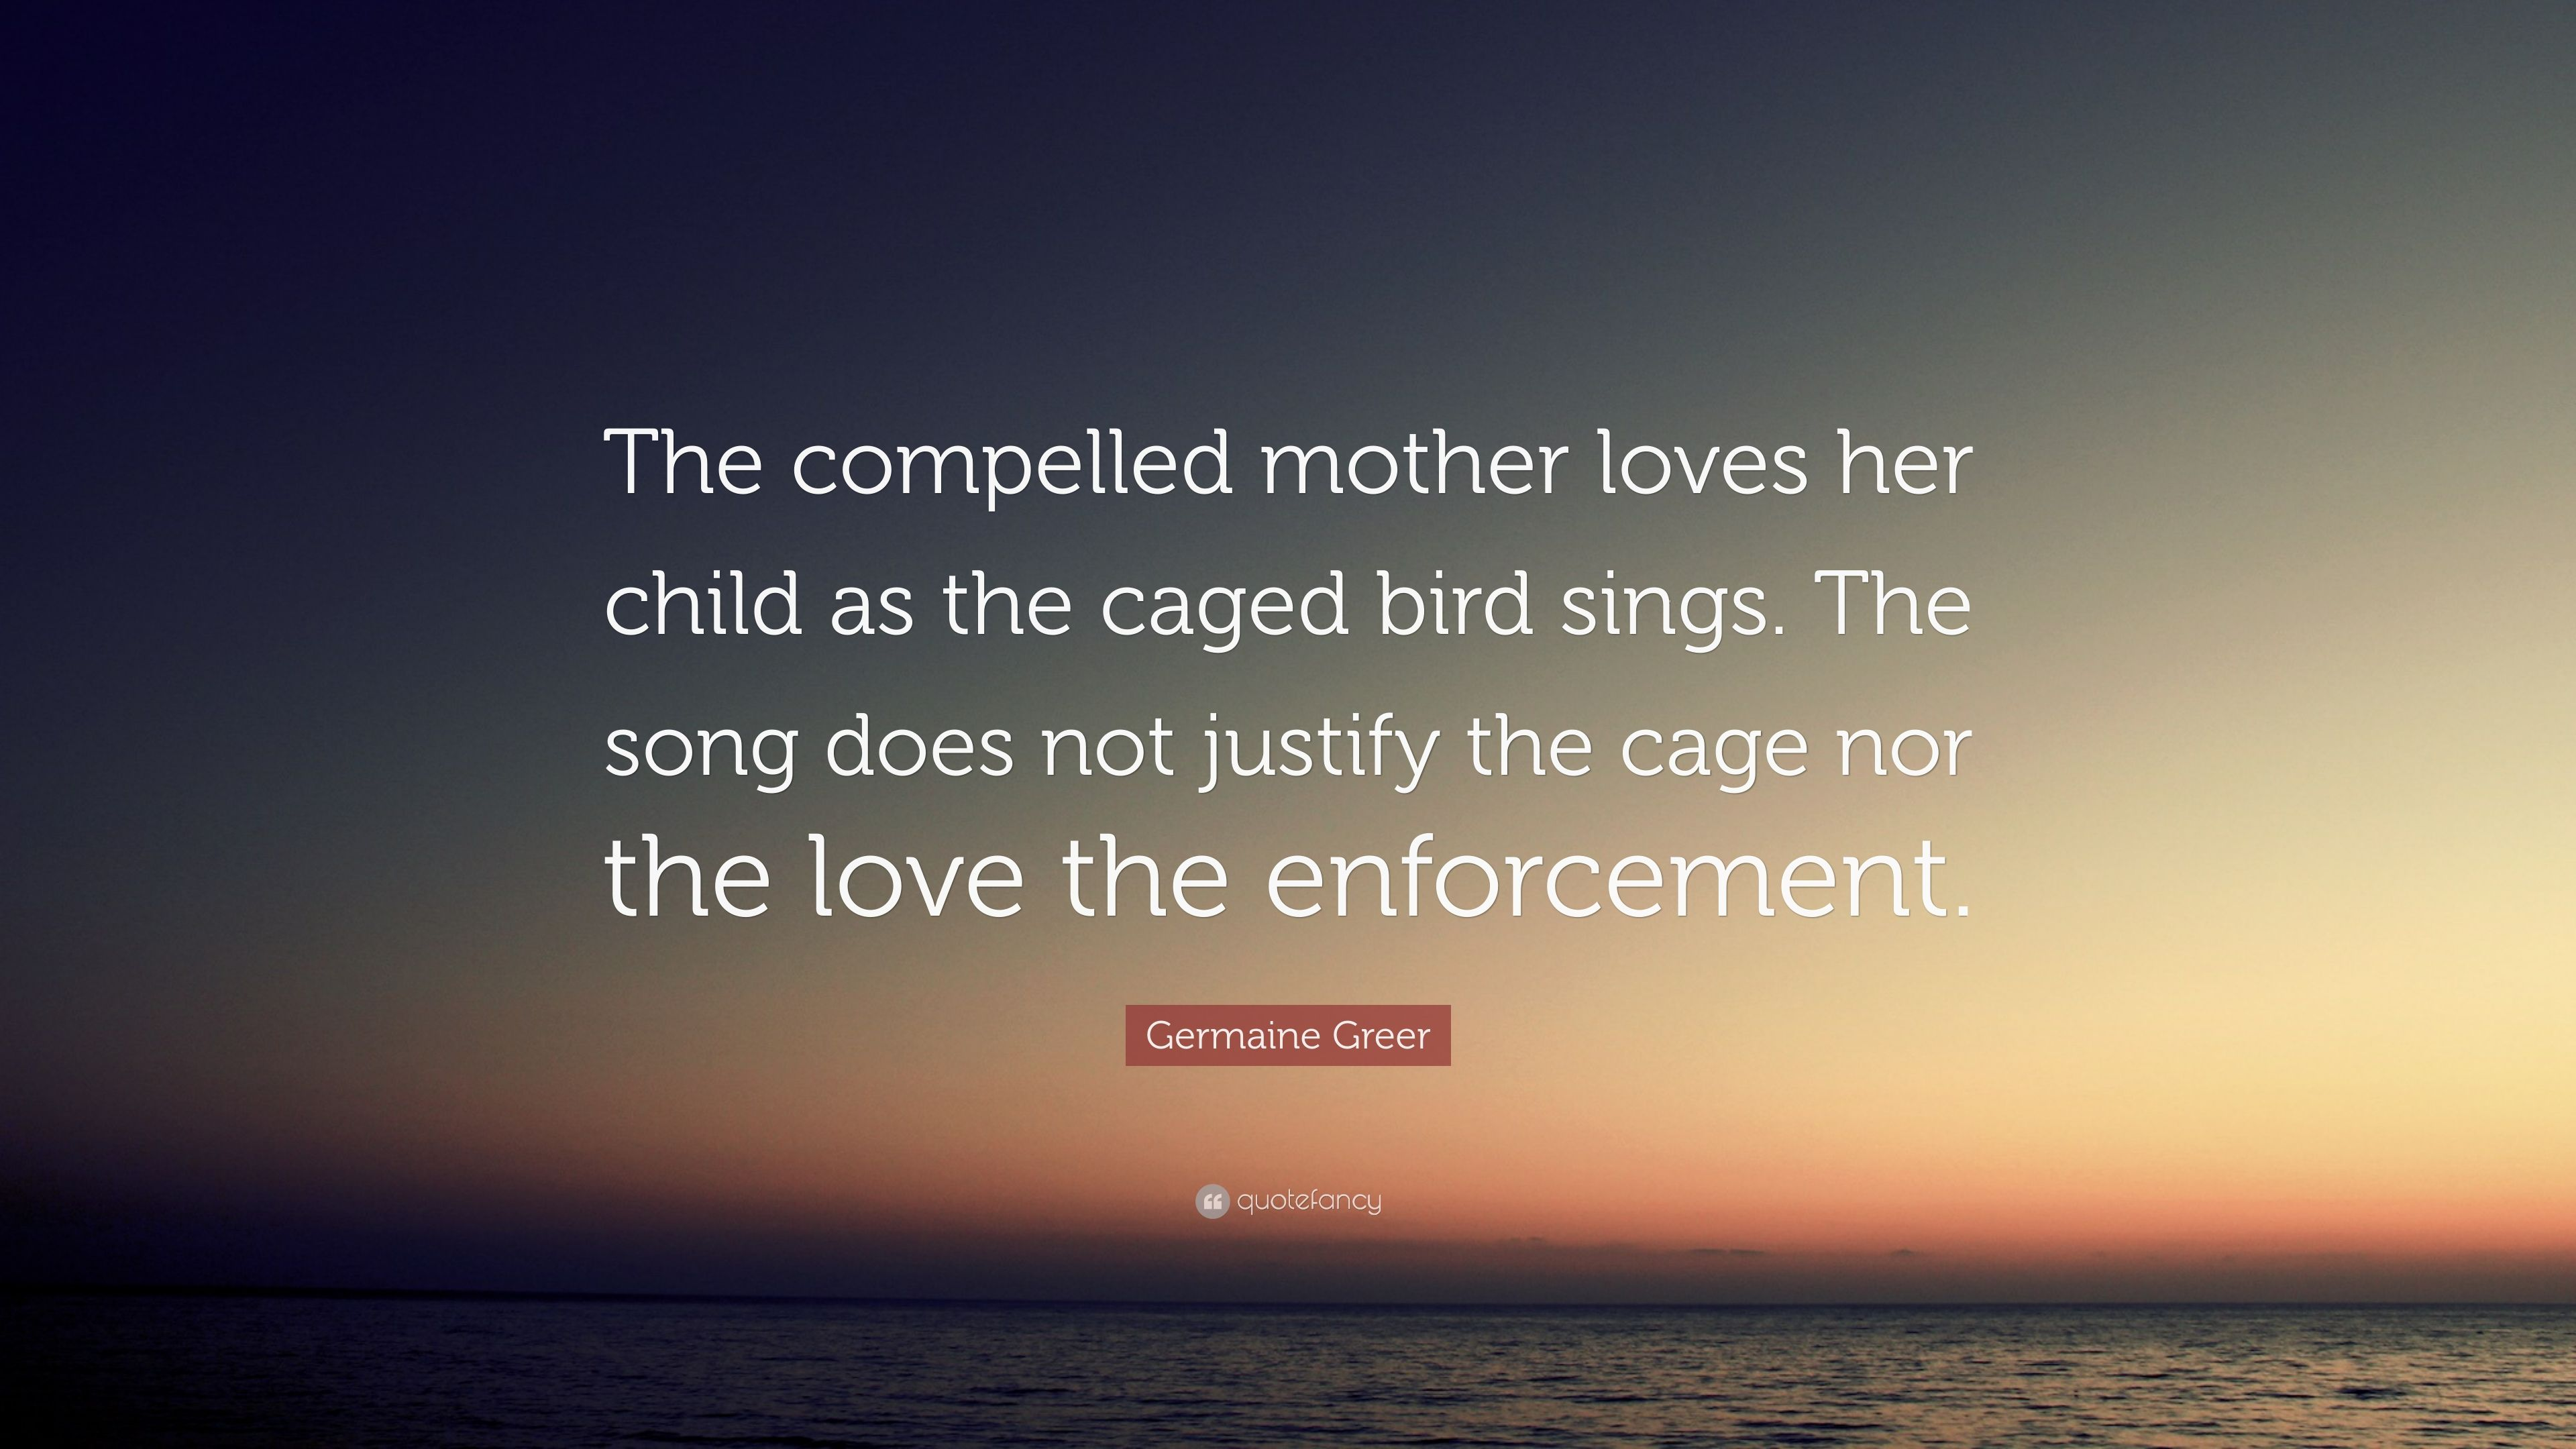 "Germaine Greer Quote ""The pelled mother loves her child as the caged bird sings"